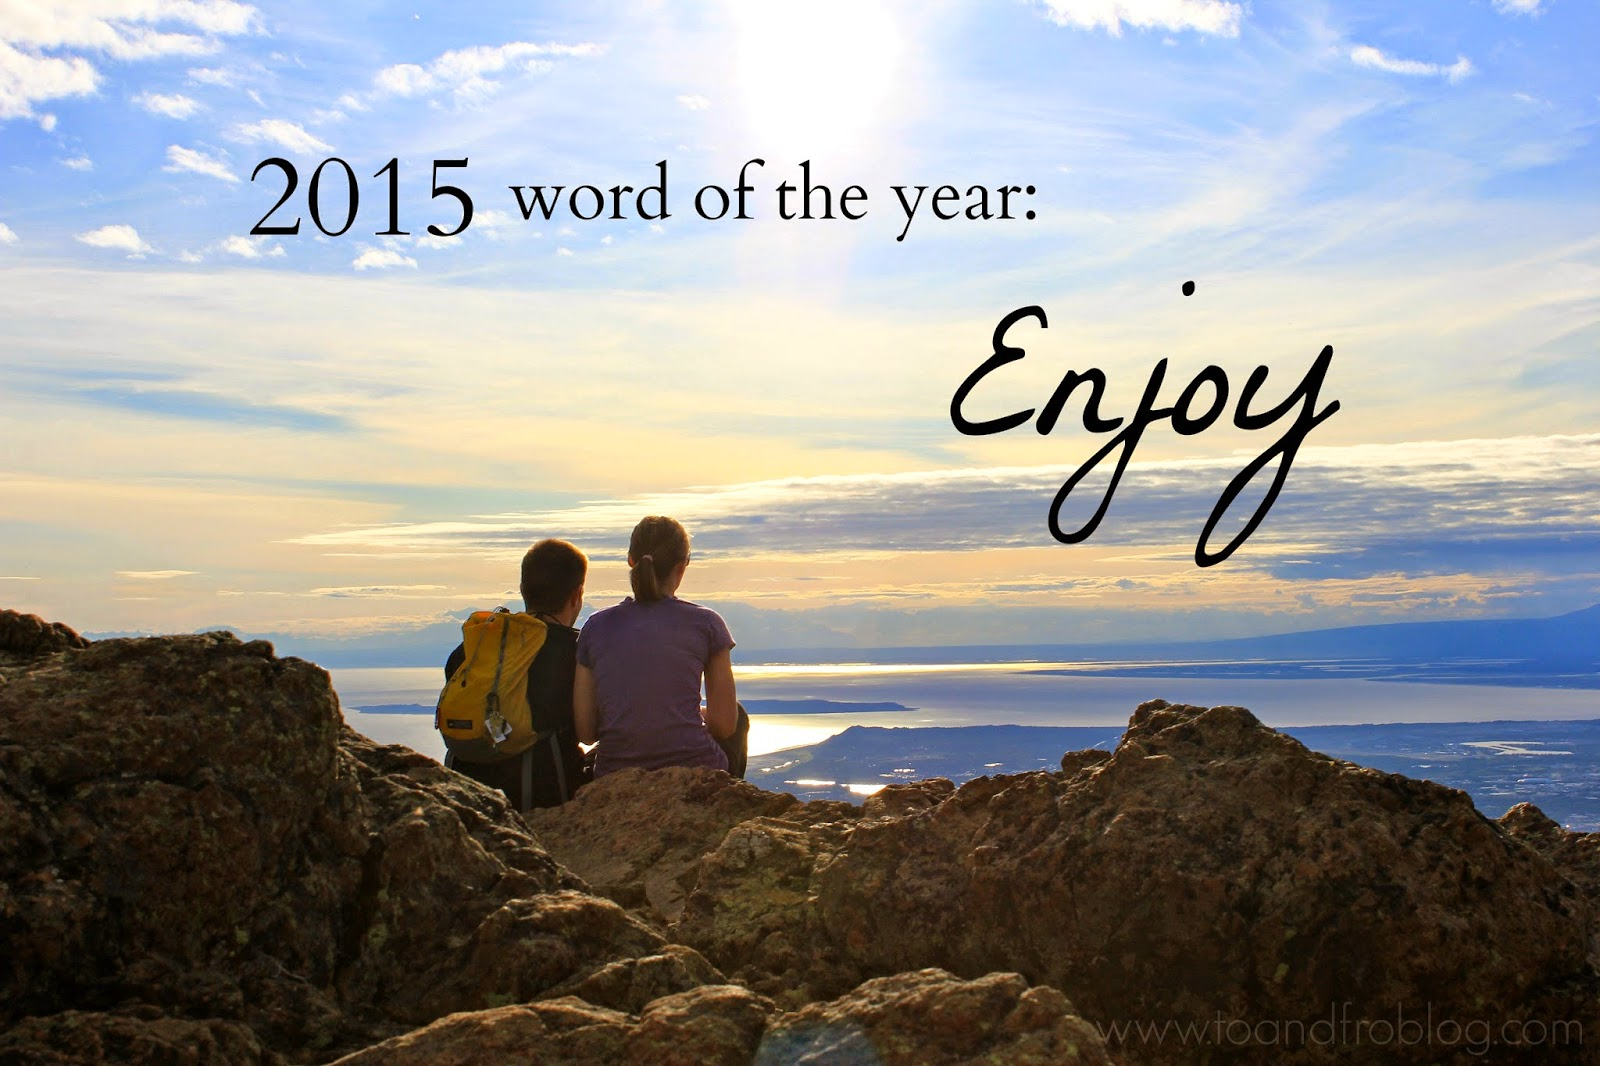 2015 word of the year: enjoy